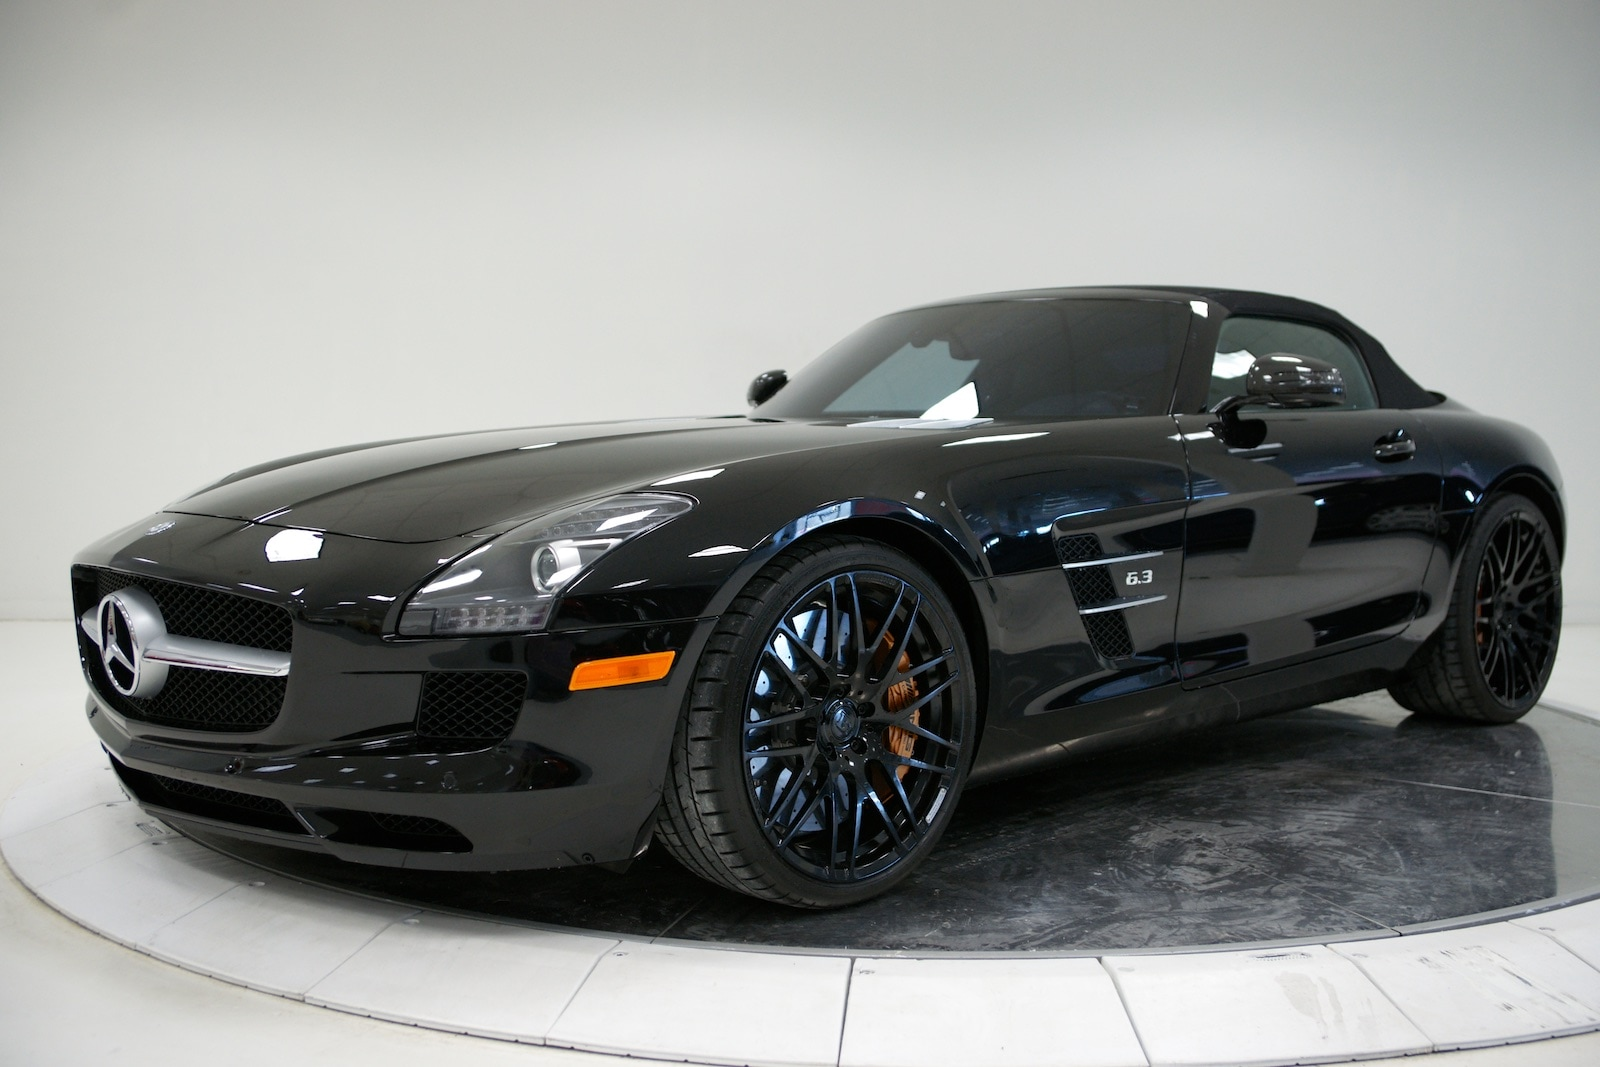 Used 2012 MERCEDESBENZ SLS AMG ROADSTER For Sale  Plainview near